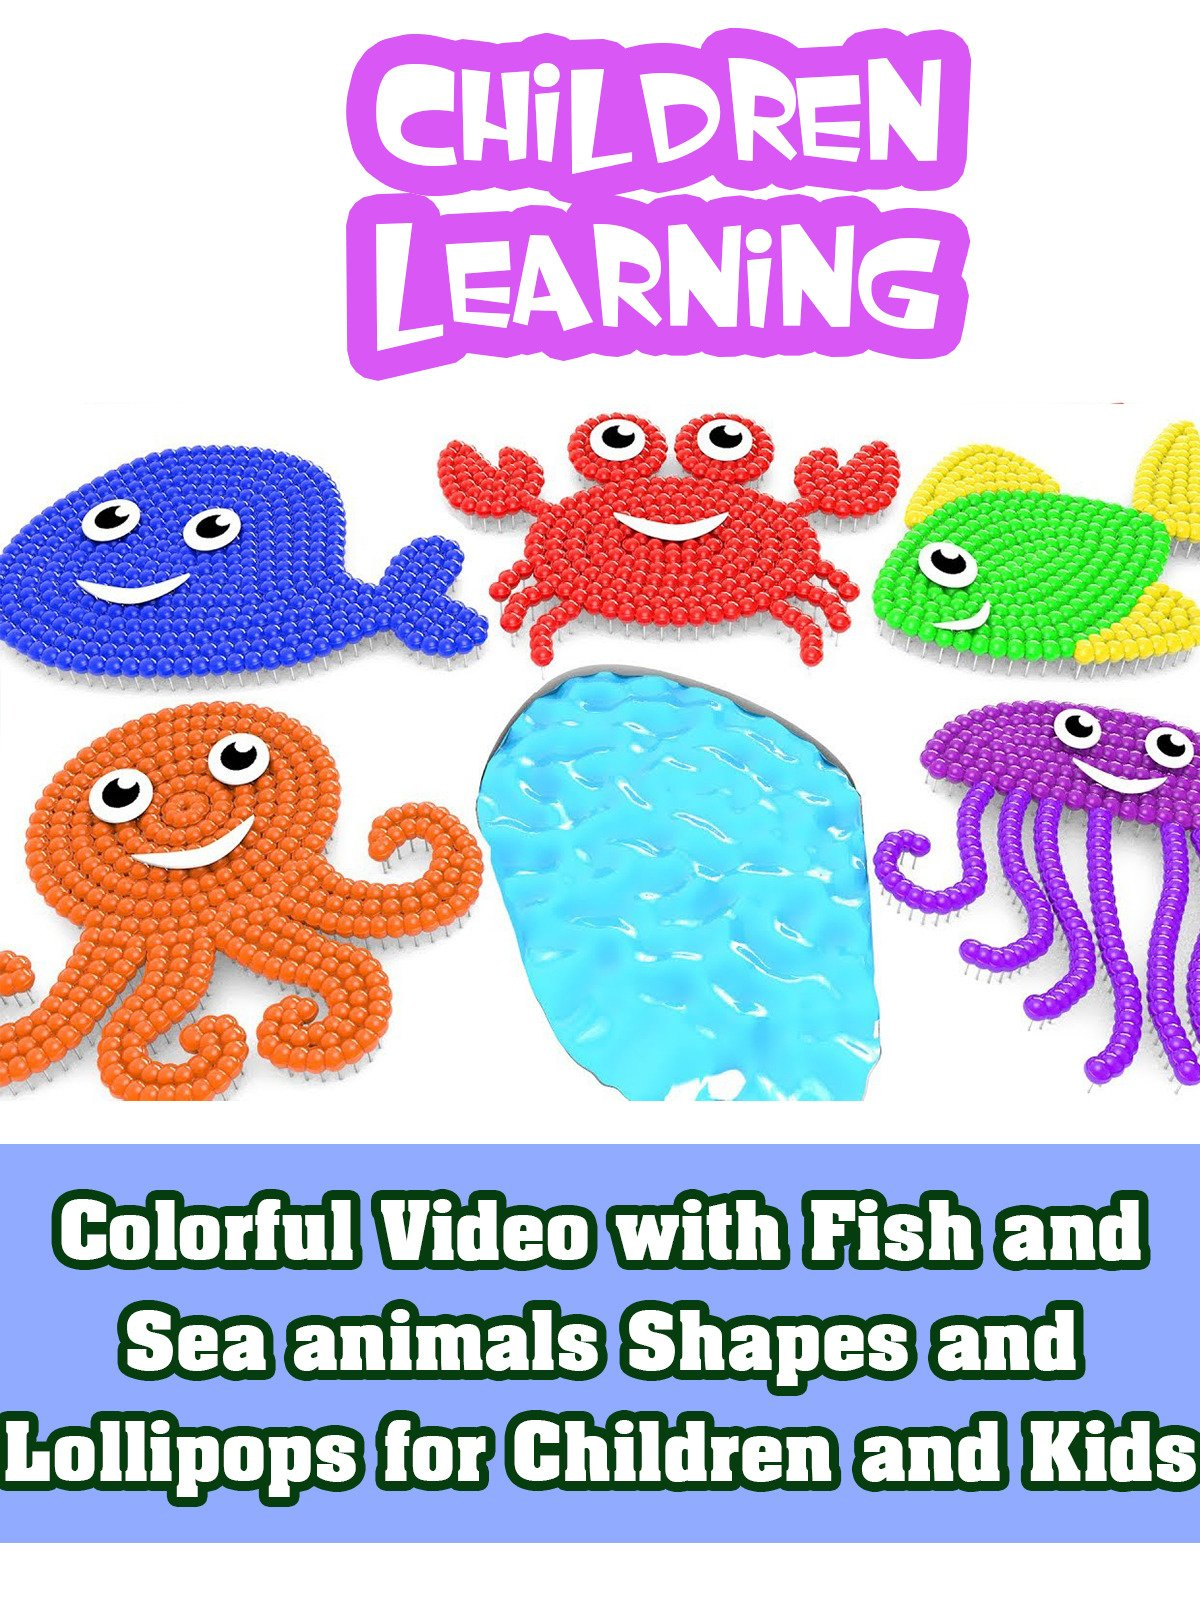 Colorful Video with Fish and Sea animals Shapes and Lollipops for Children and Kids